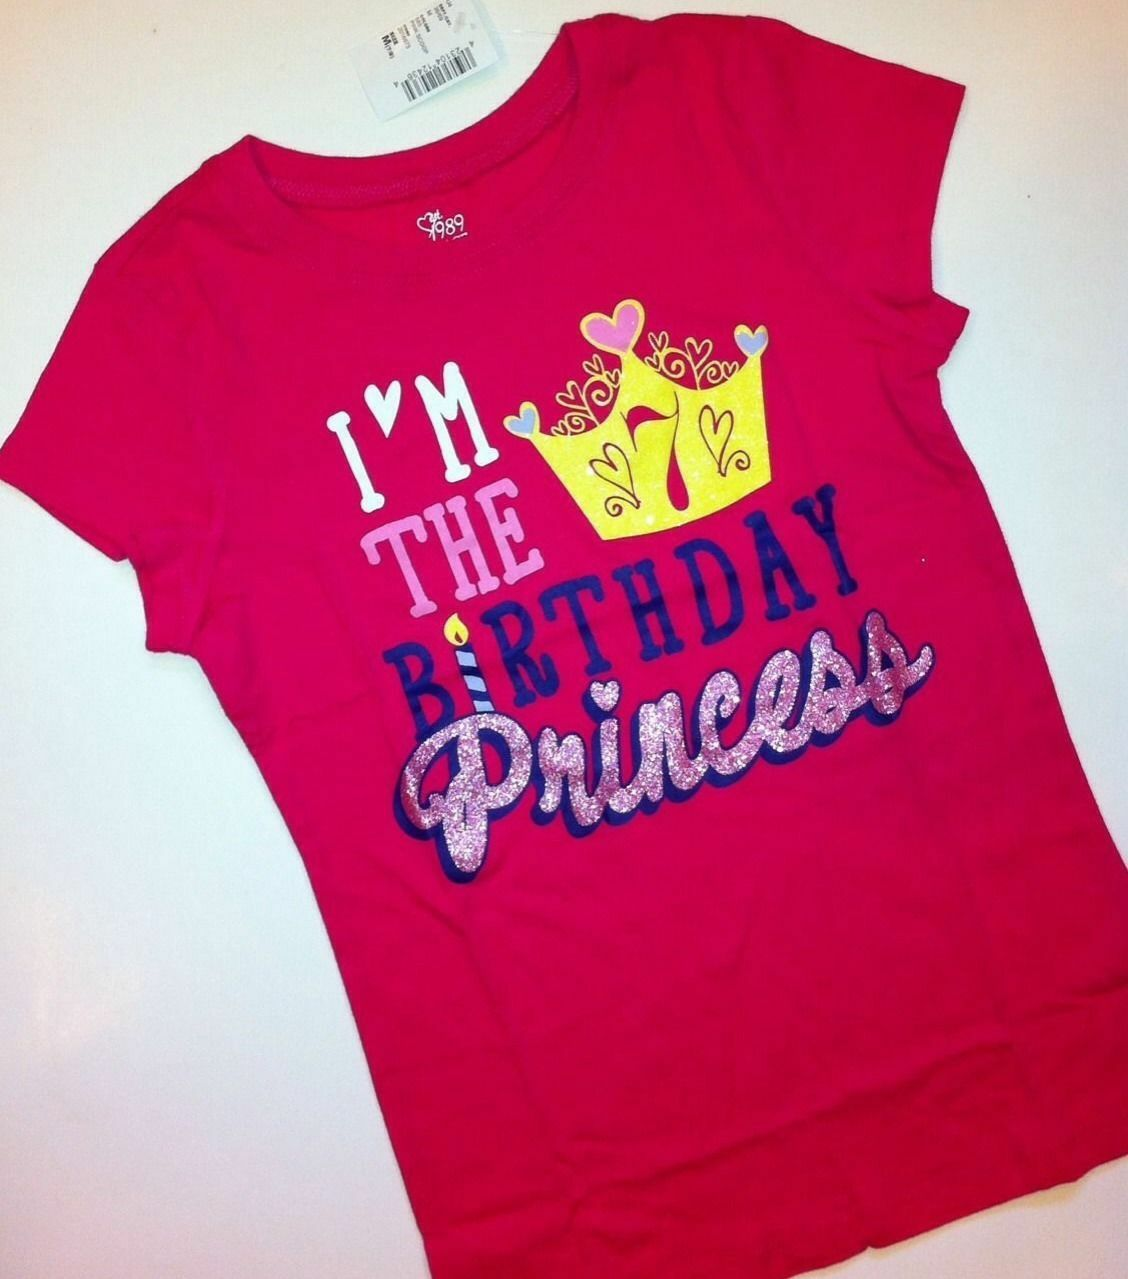 7th Birthday 7 Years Girls Graphic Shirt 8 Medium Gift Pink Princess SS For Sale Online